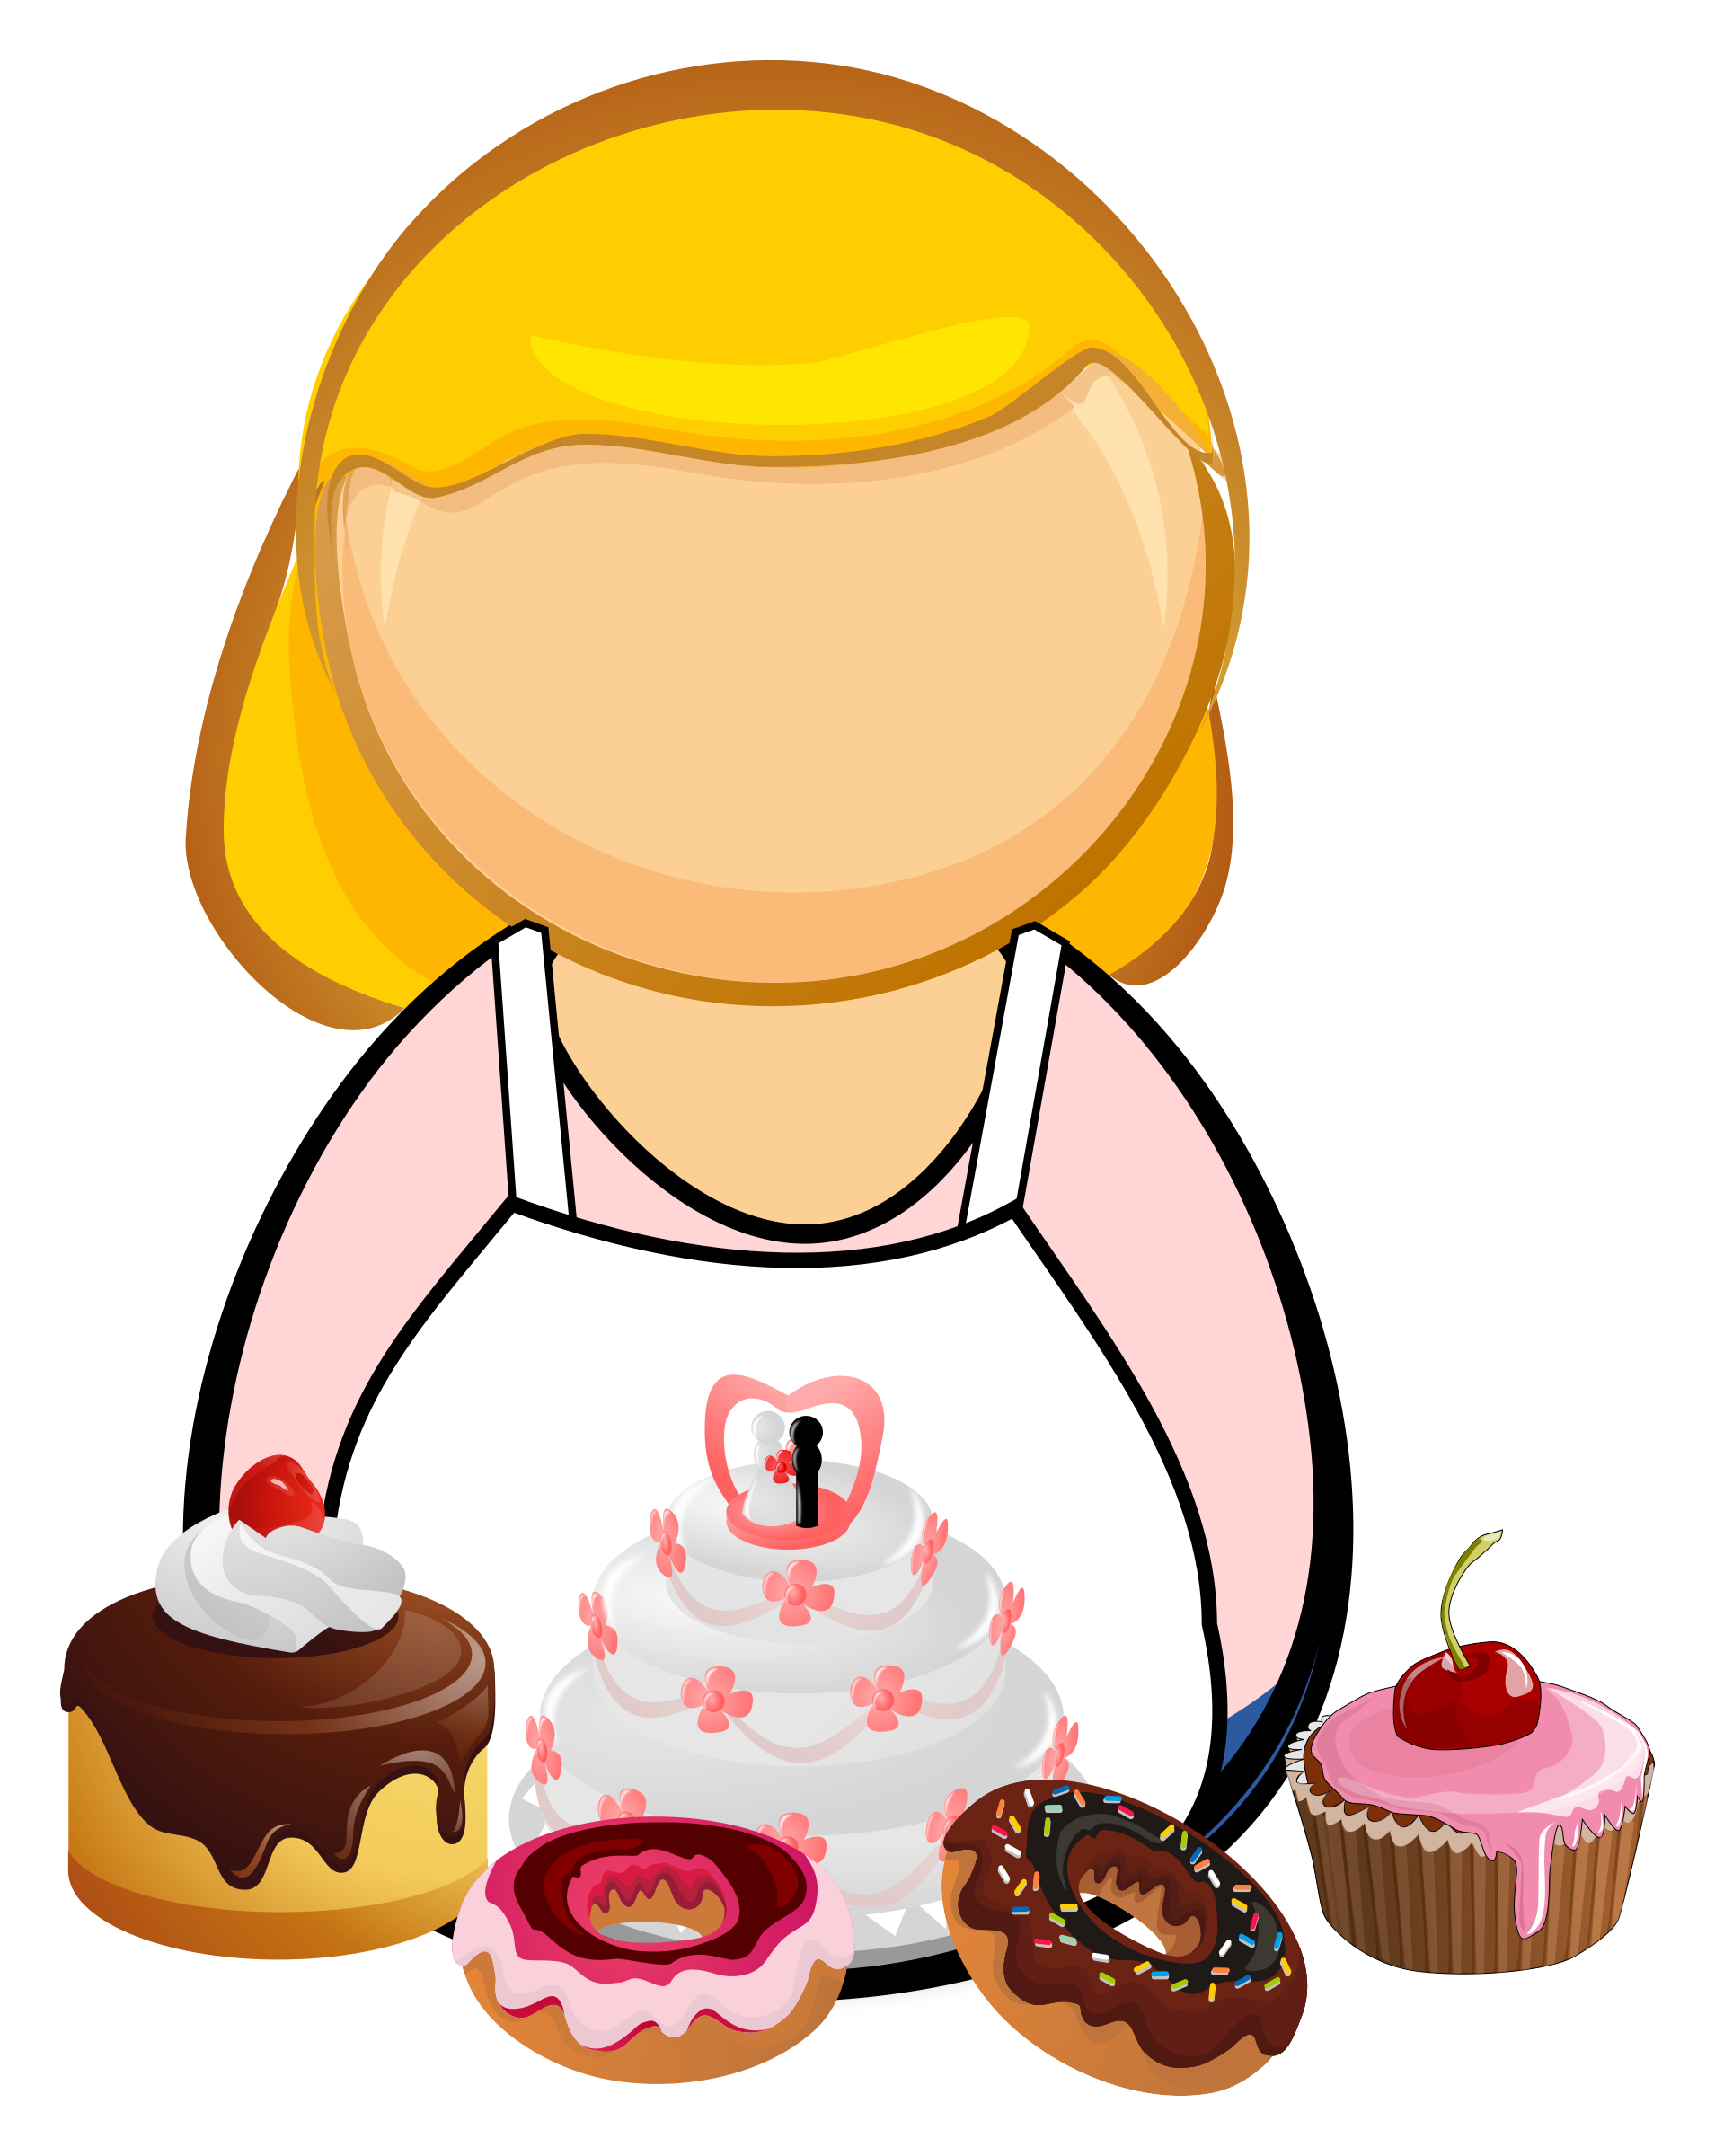 Confectioner cook big image. Clipart cake pastry